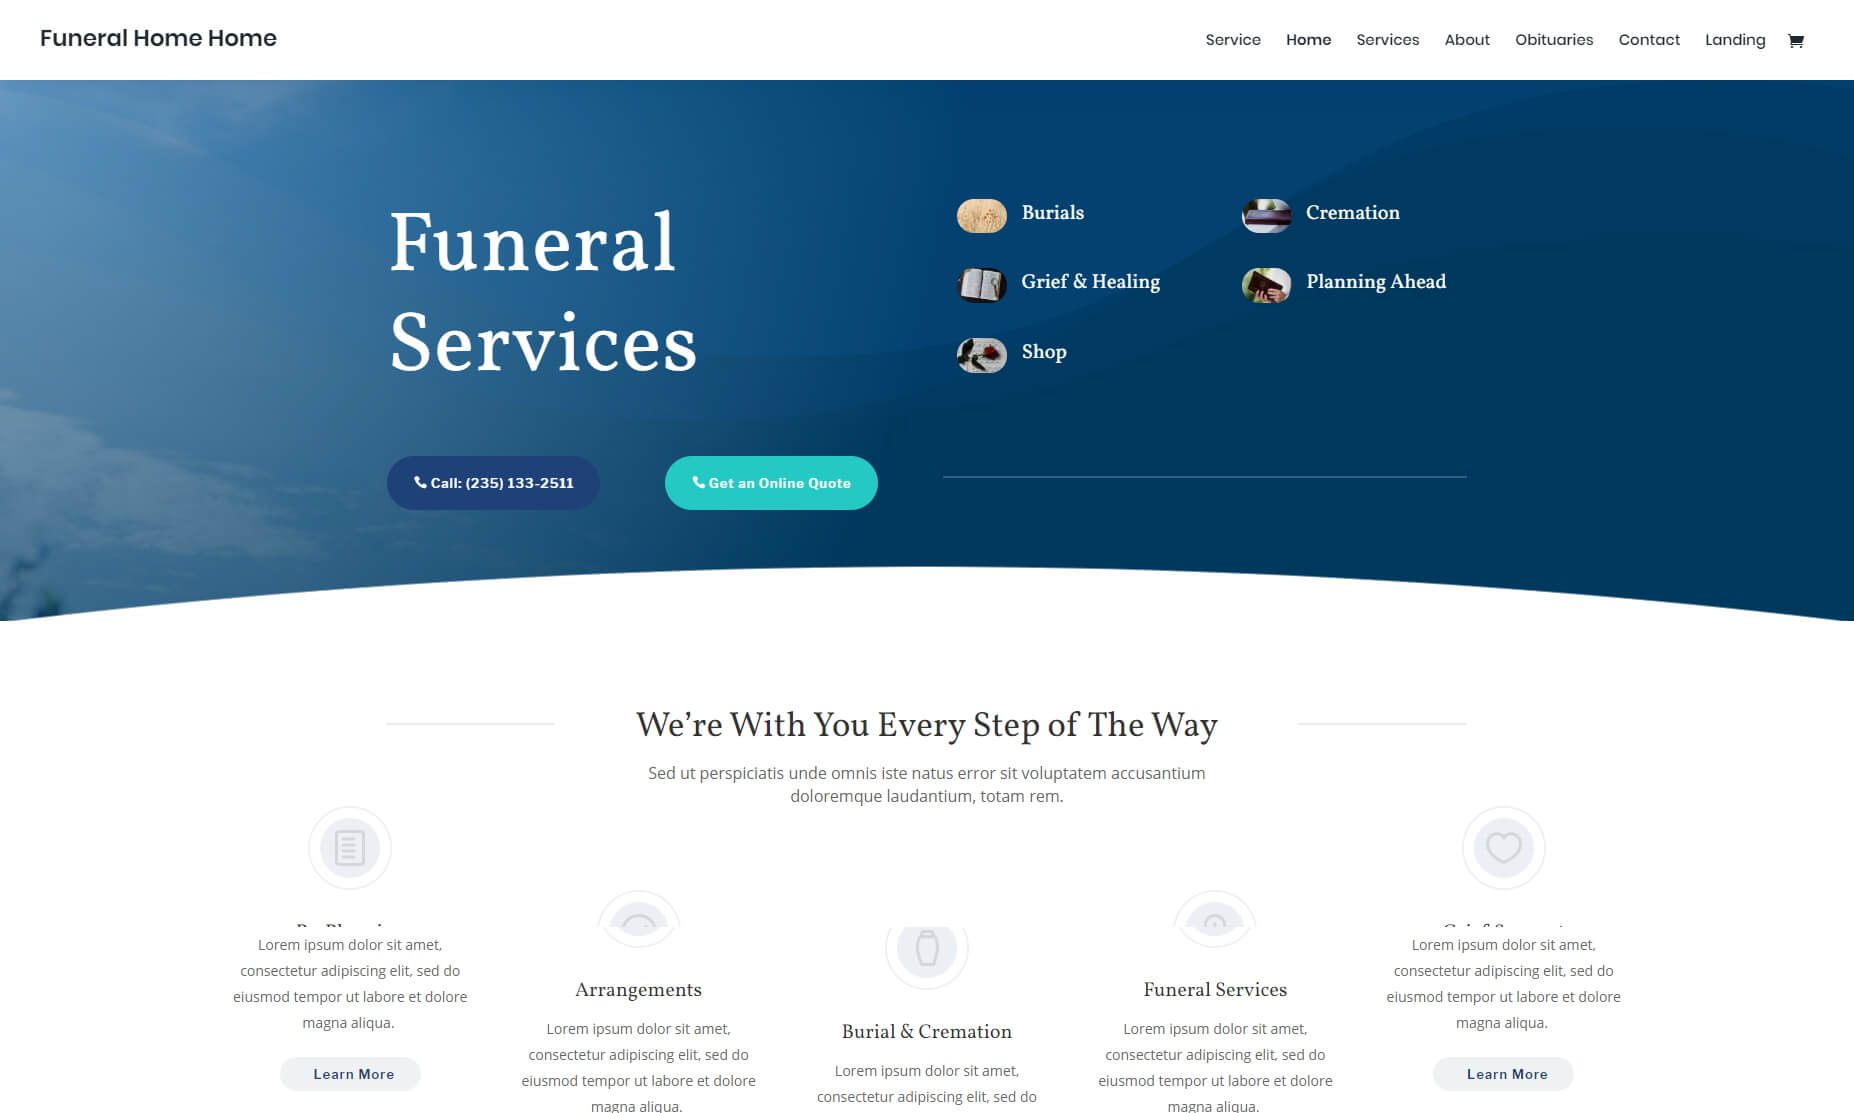 screencapture-elegantthemes-layouts-services-funeral-home-home-page-live-demo-2020-06-03-18_05_14